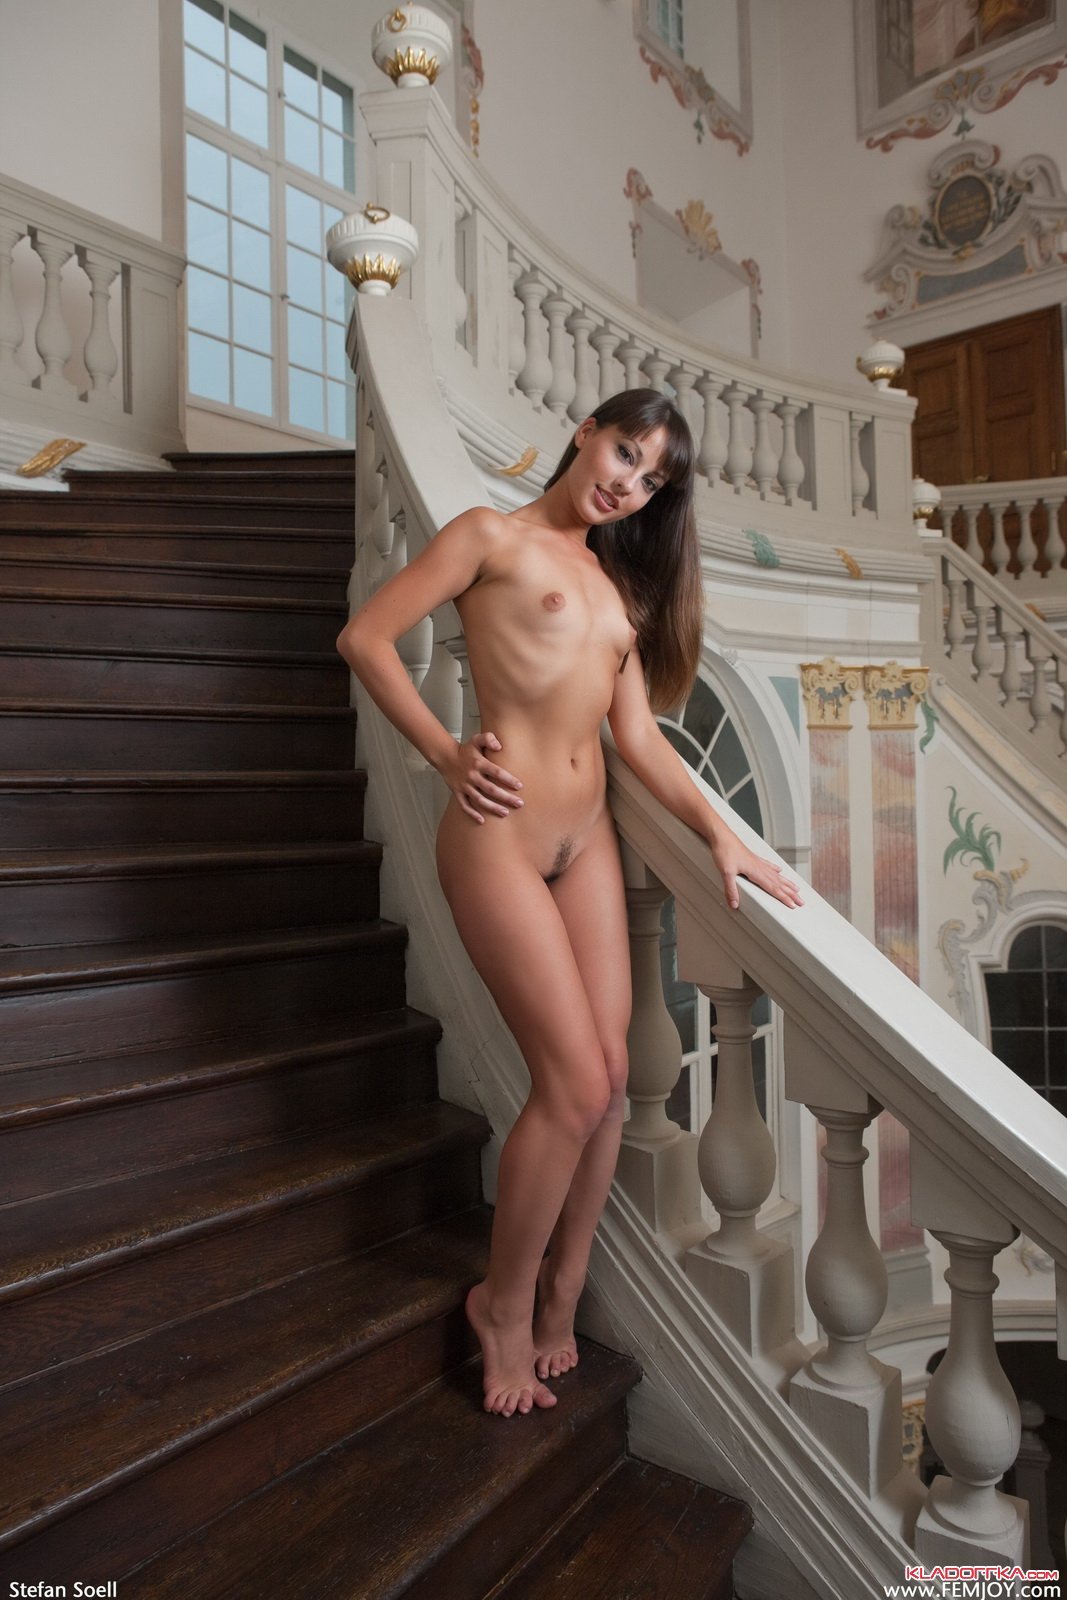 Ariel rebel nude on the stairs